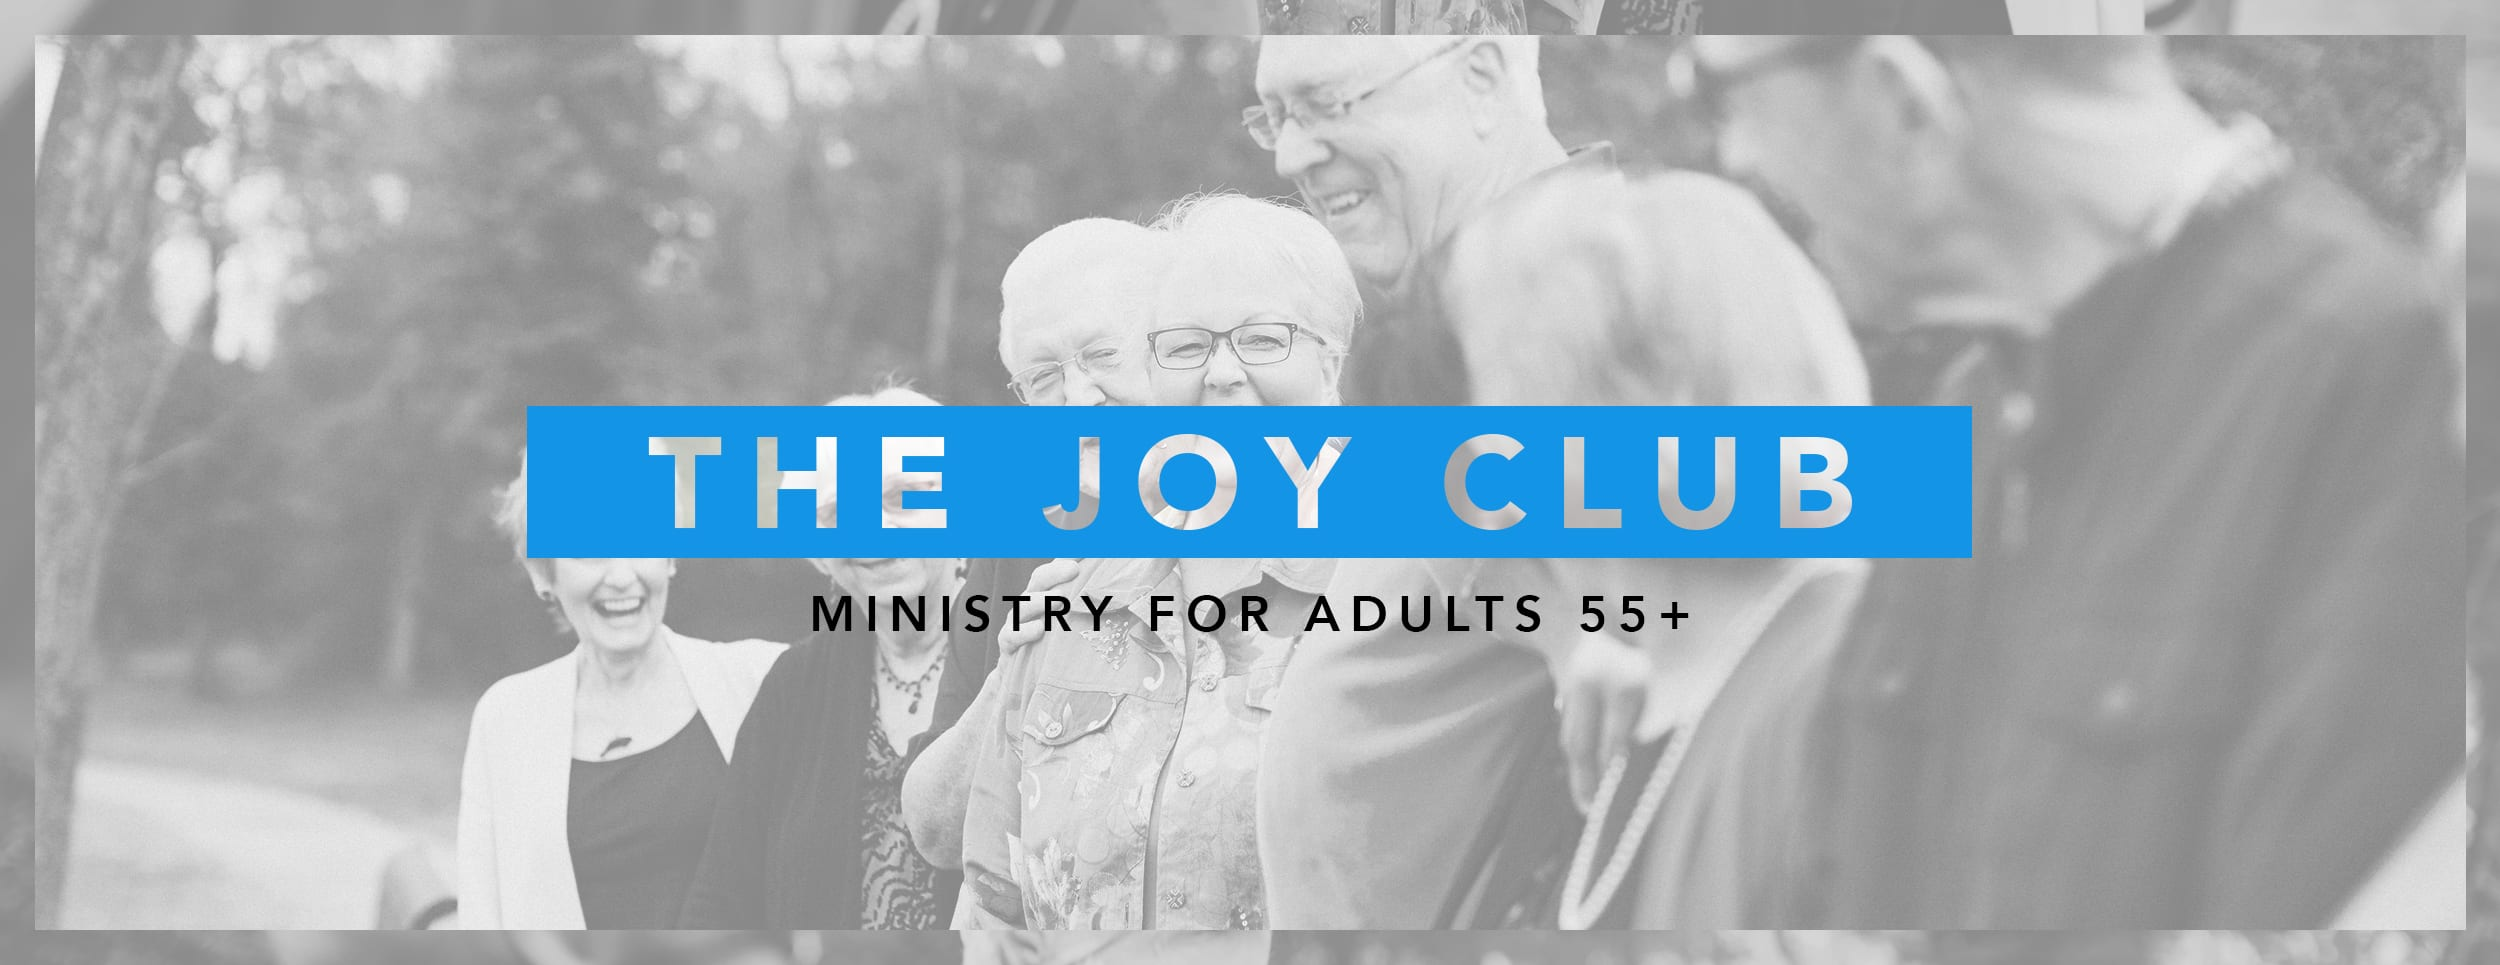 The Joy Club